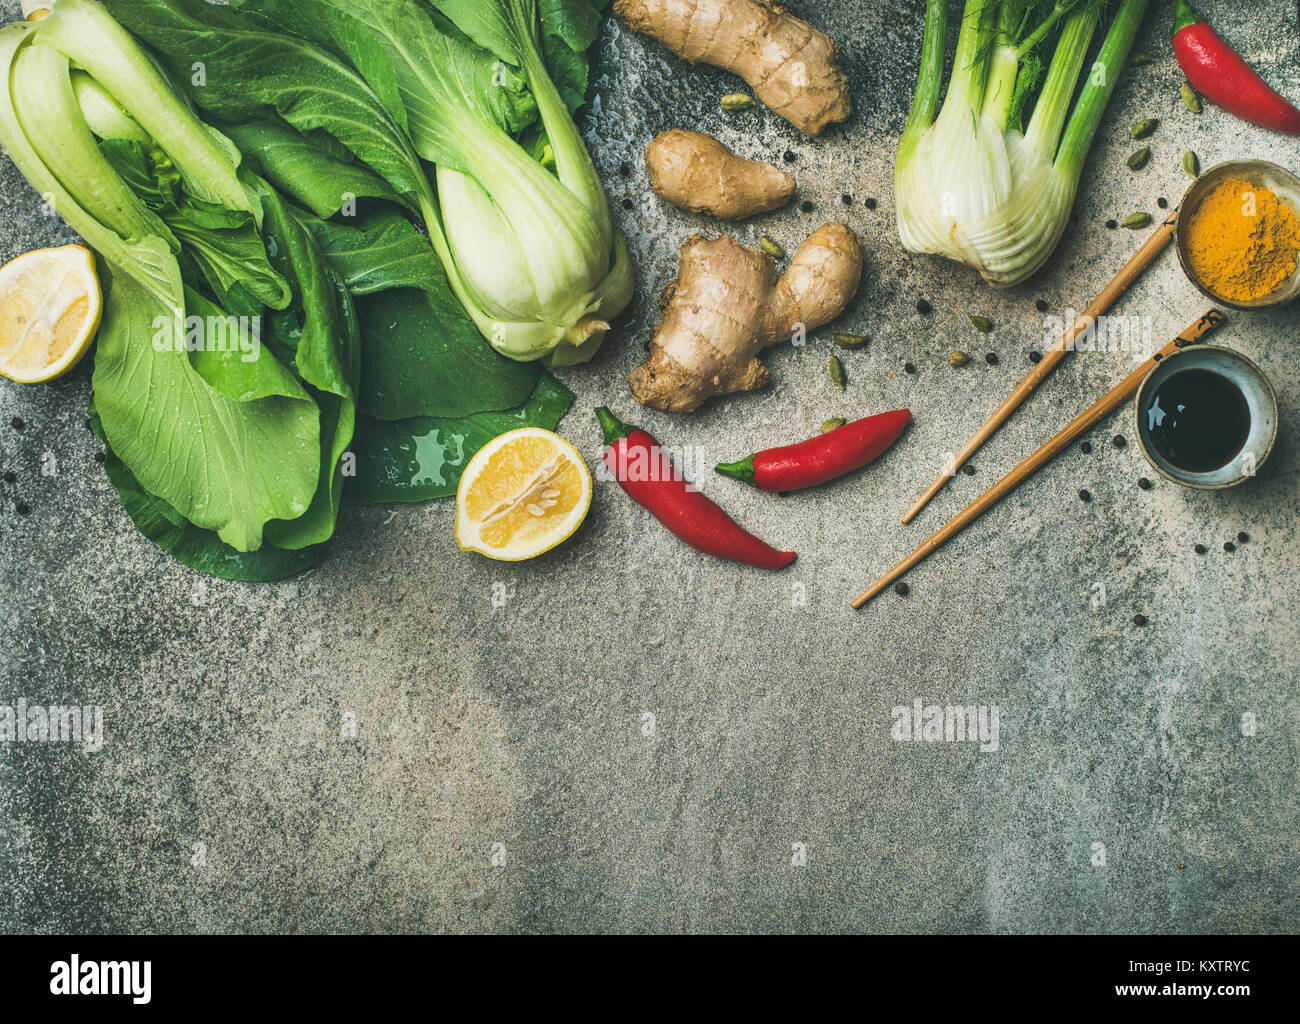 Flat-lay of Asian cuisine ingredients over concrete background, copy space - Stock Image